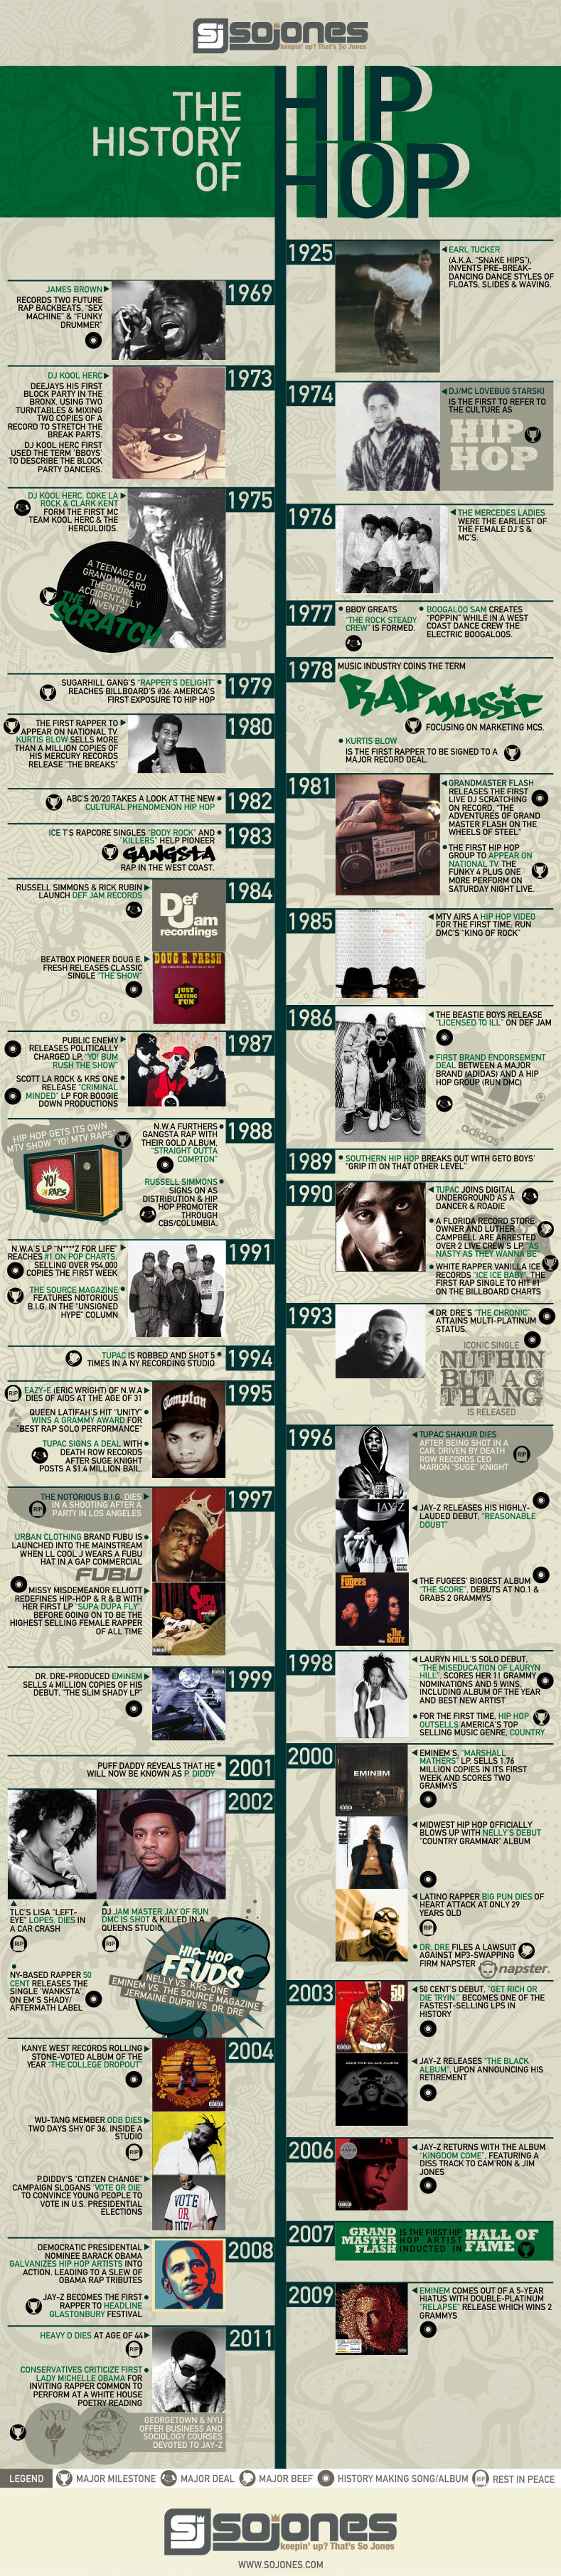 History of Hip Hop Timeline Infographic